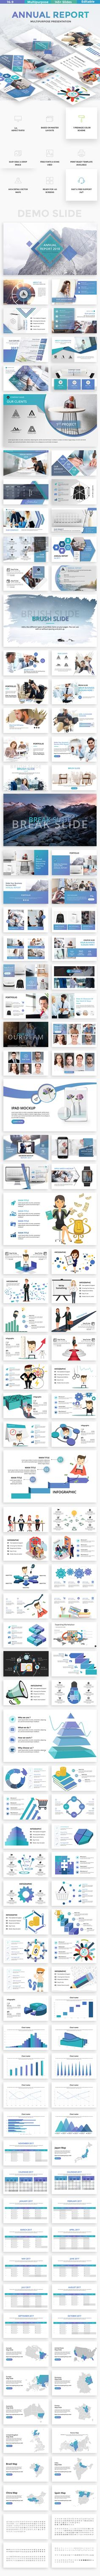 Annual Report #Powerpoint Template - Business PowerPoint Templates